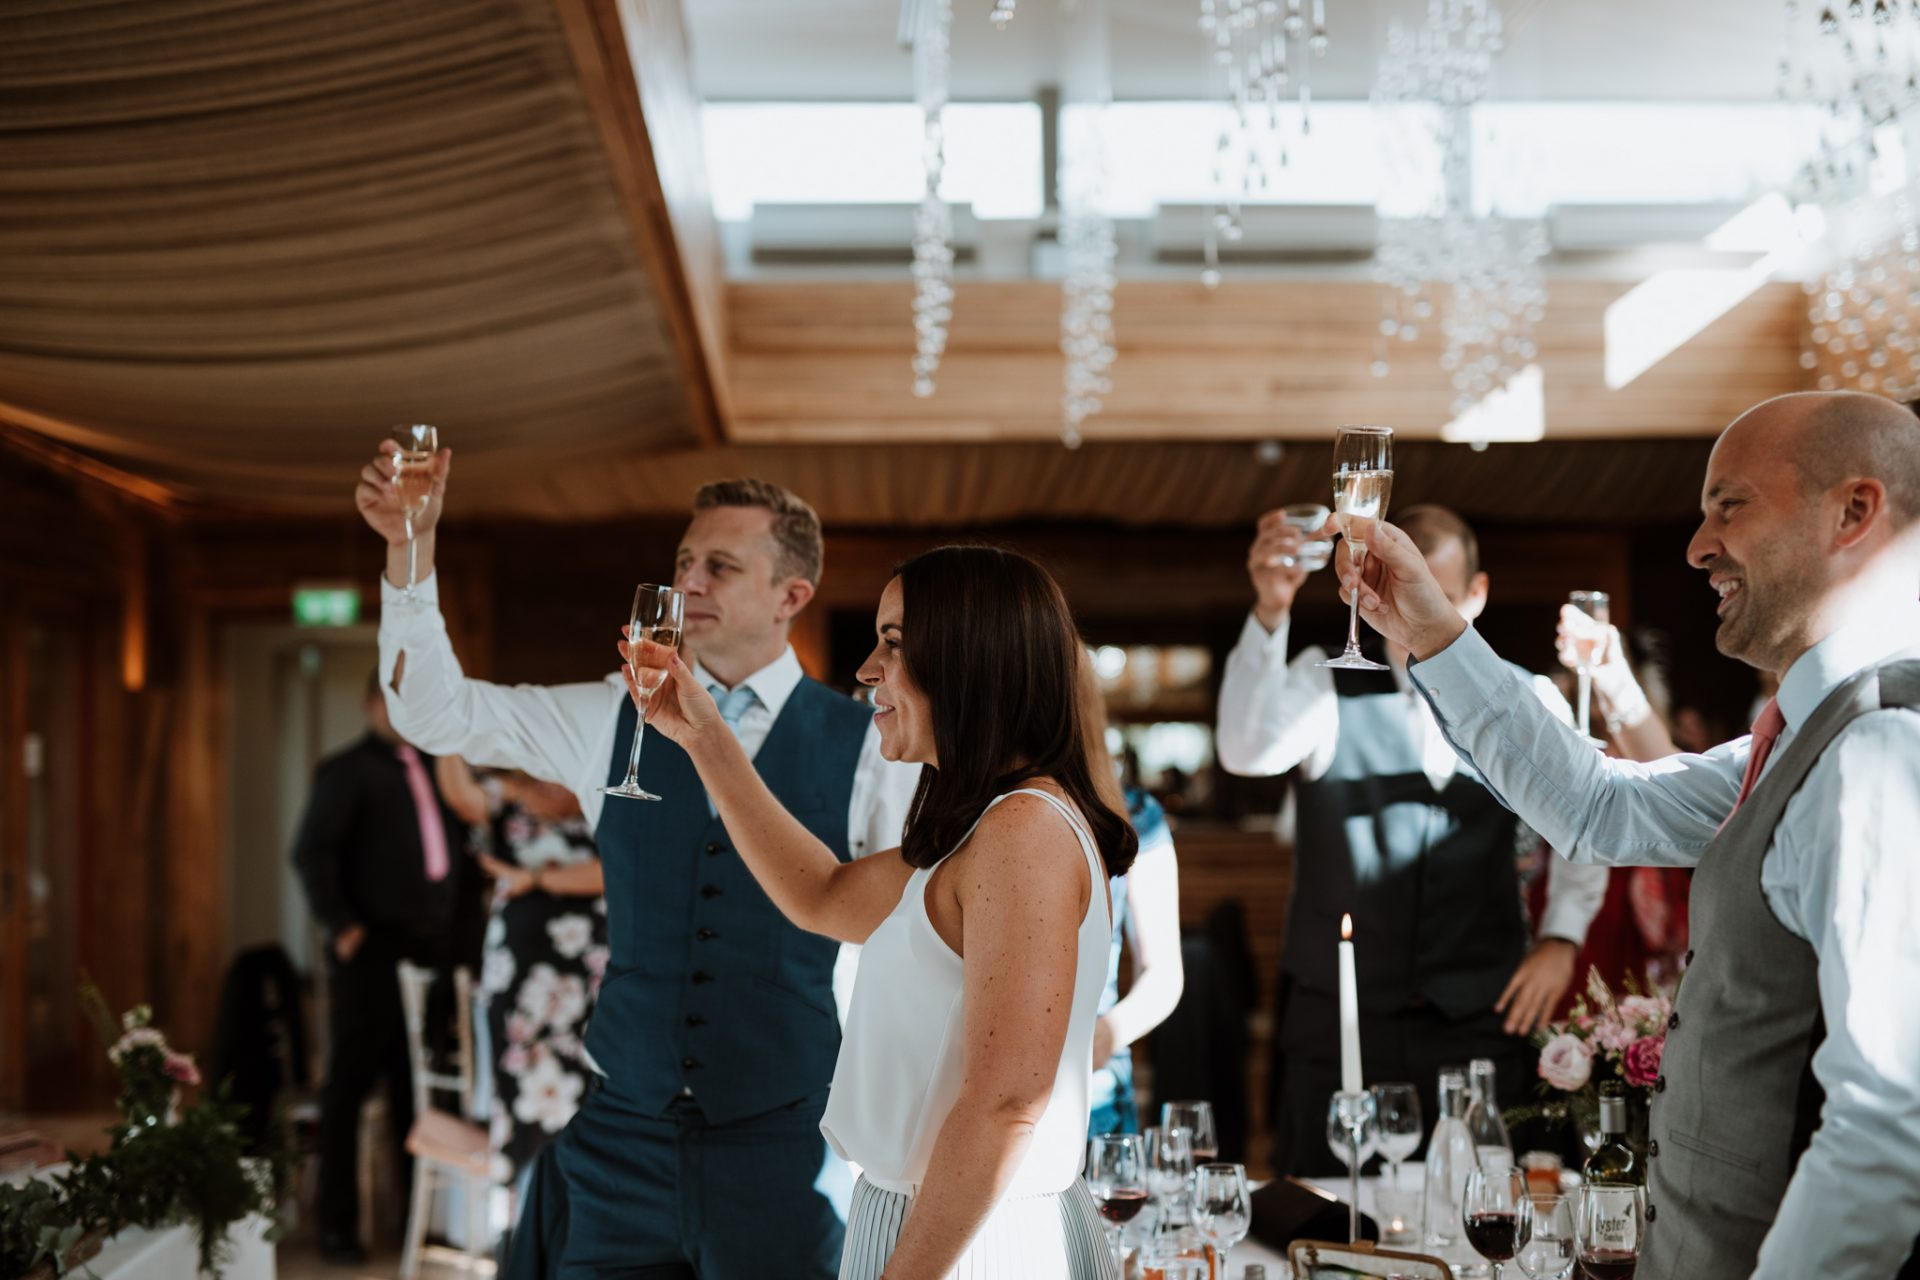 guests raise their glasses